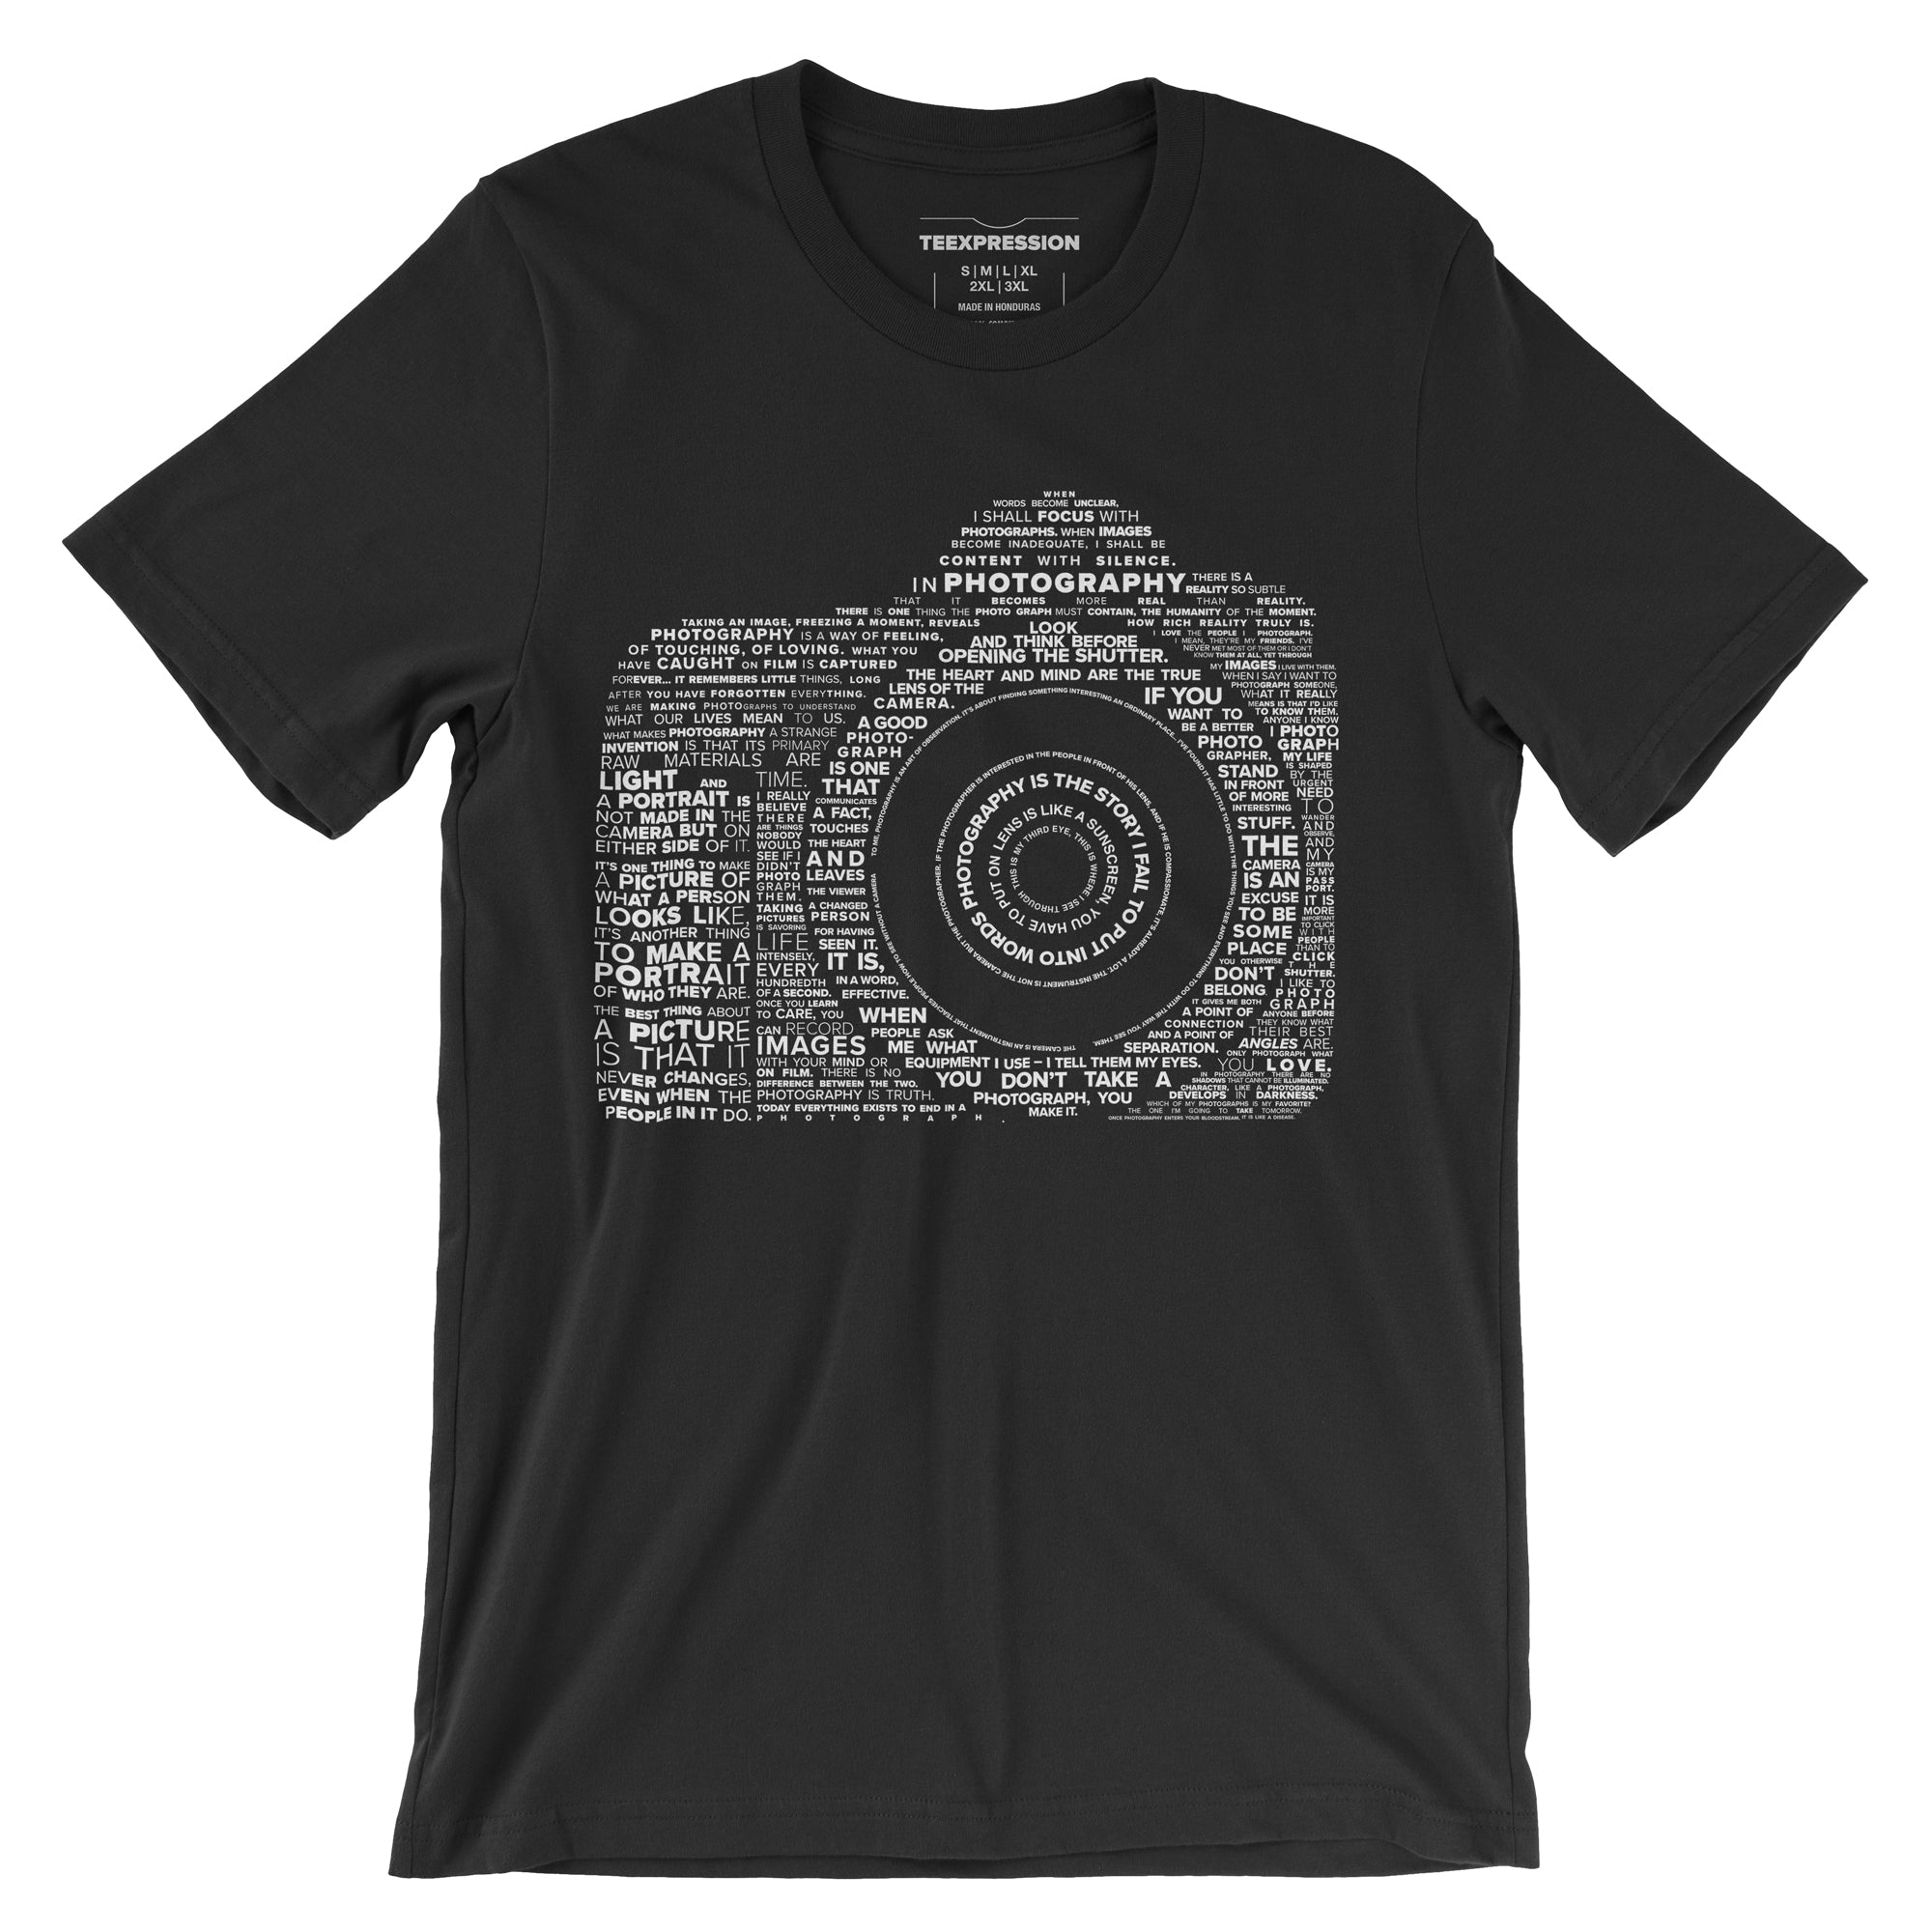 Famous quotes typographically collaged to form a camera on black t-shirt Teexpression